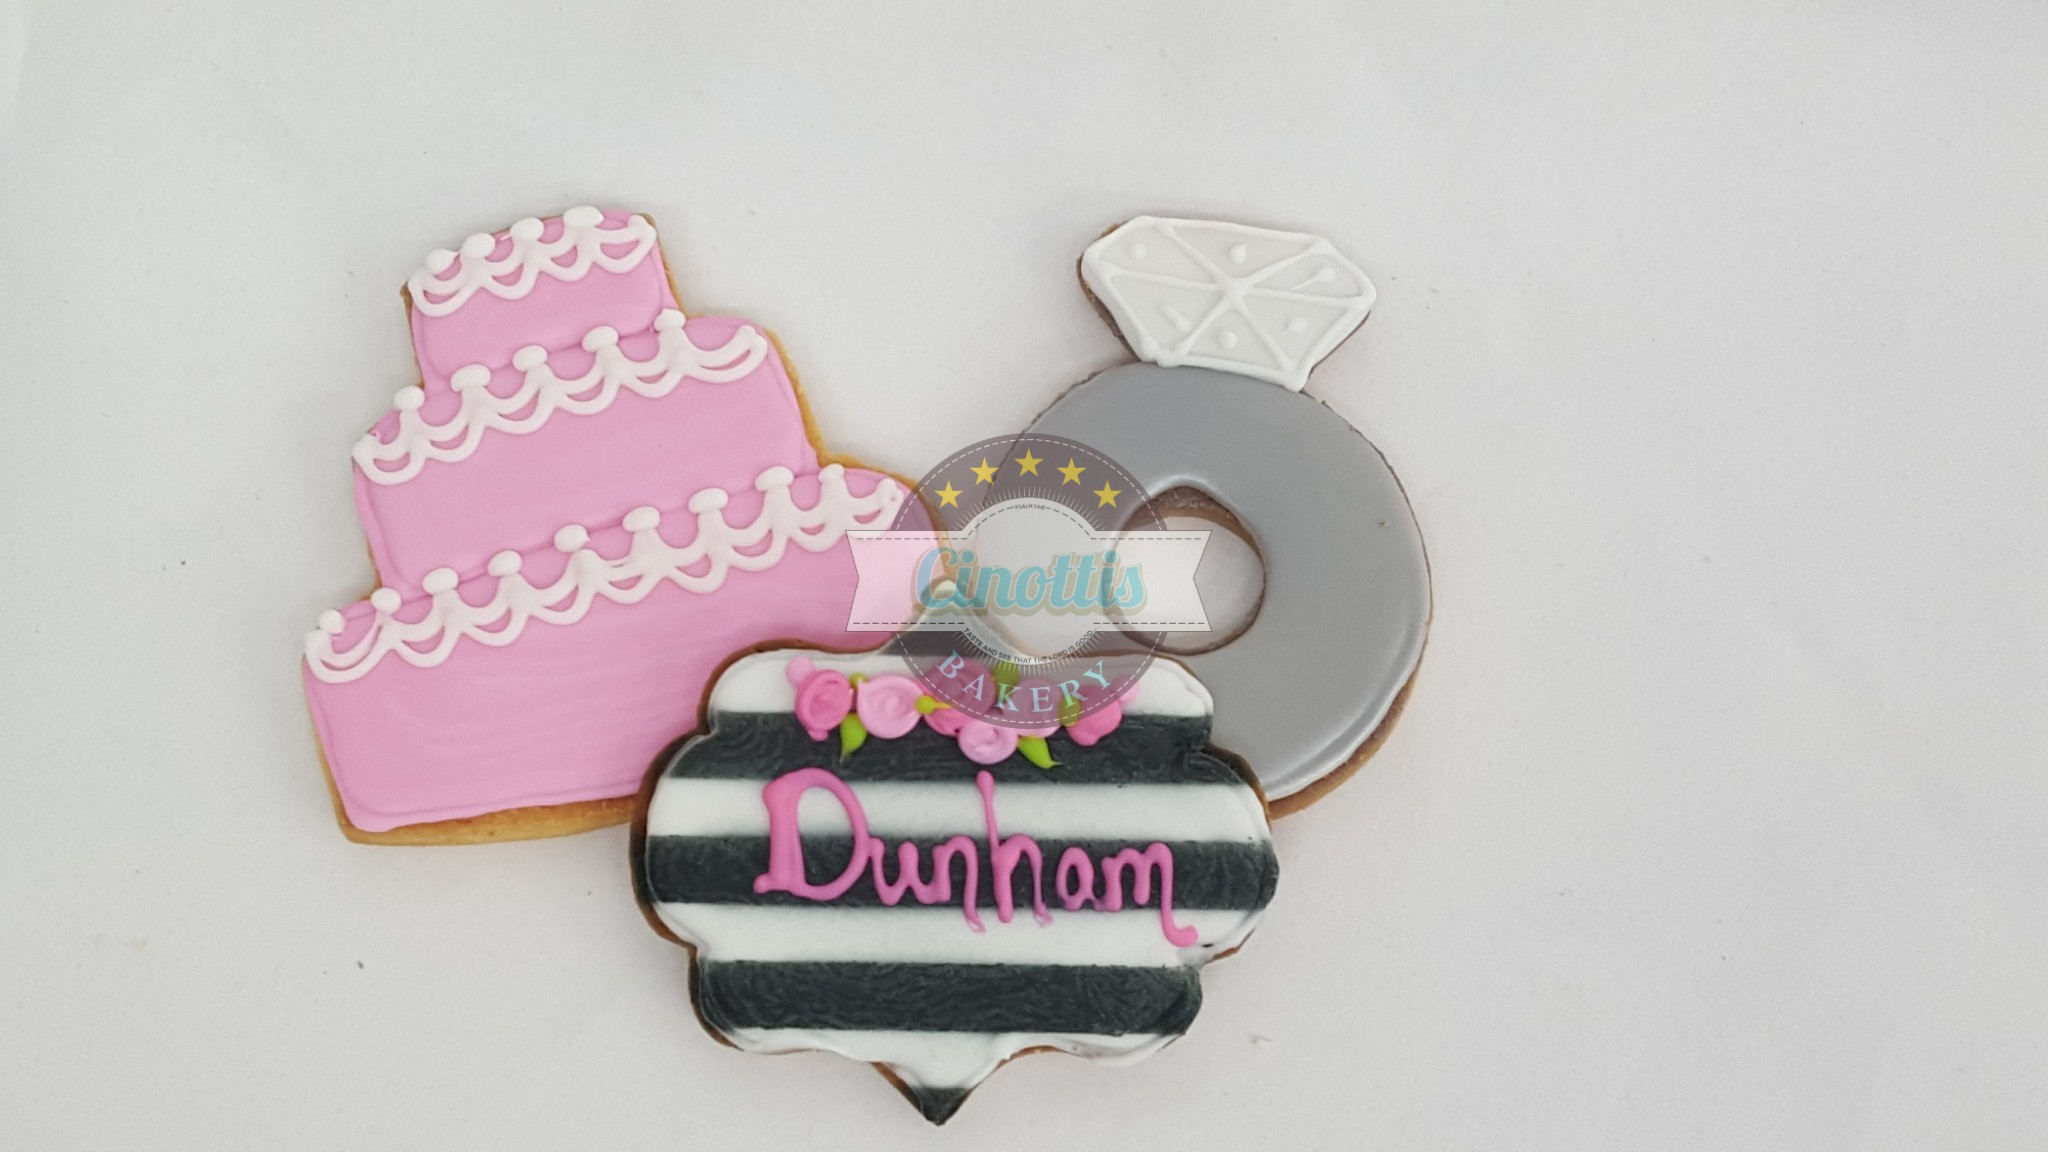 Chic Wedding, Shower, Favor, Ring, Cake, Cookie, Stripes, Monogram, Cinottis Bakery, Fondant, Diamond, Jewels, Silver, Gold, Band